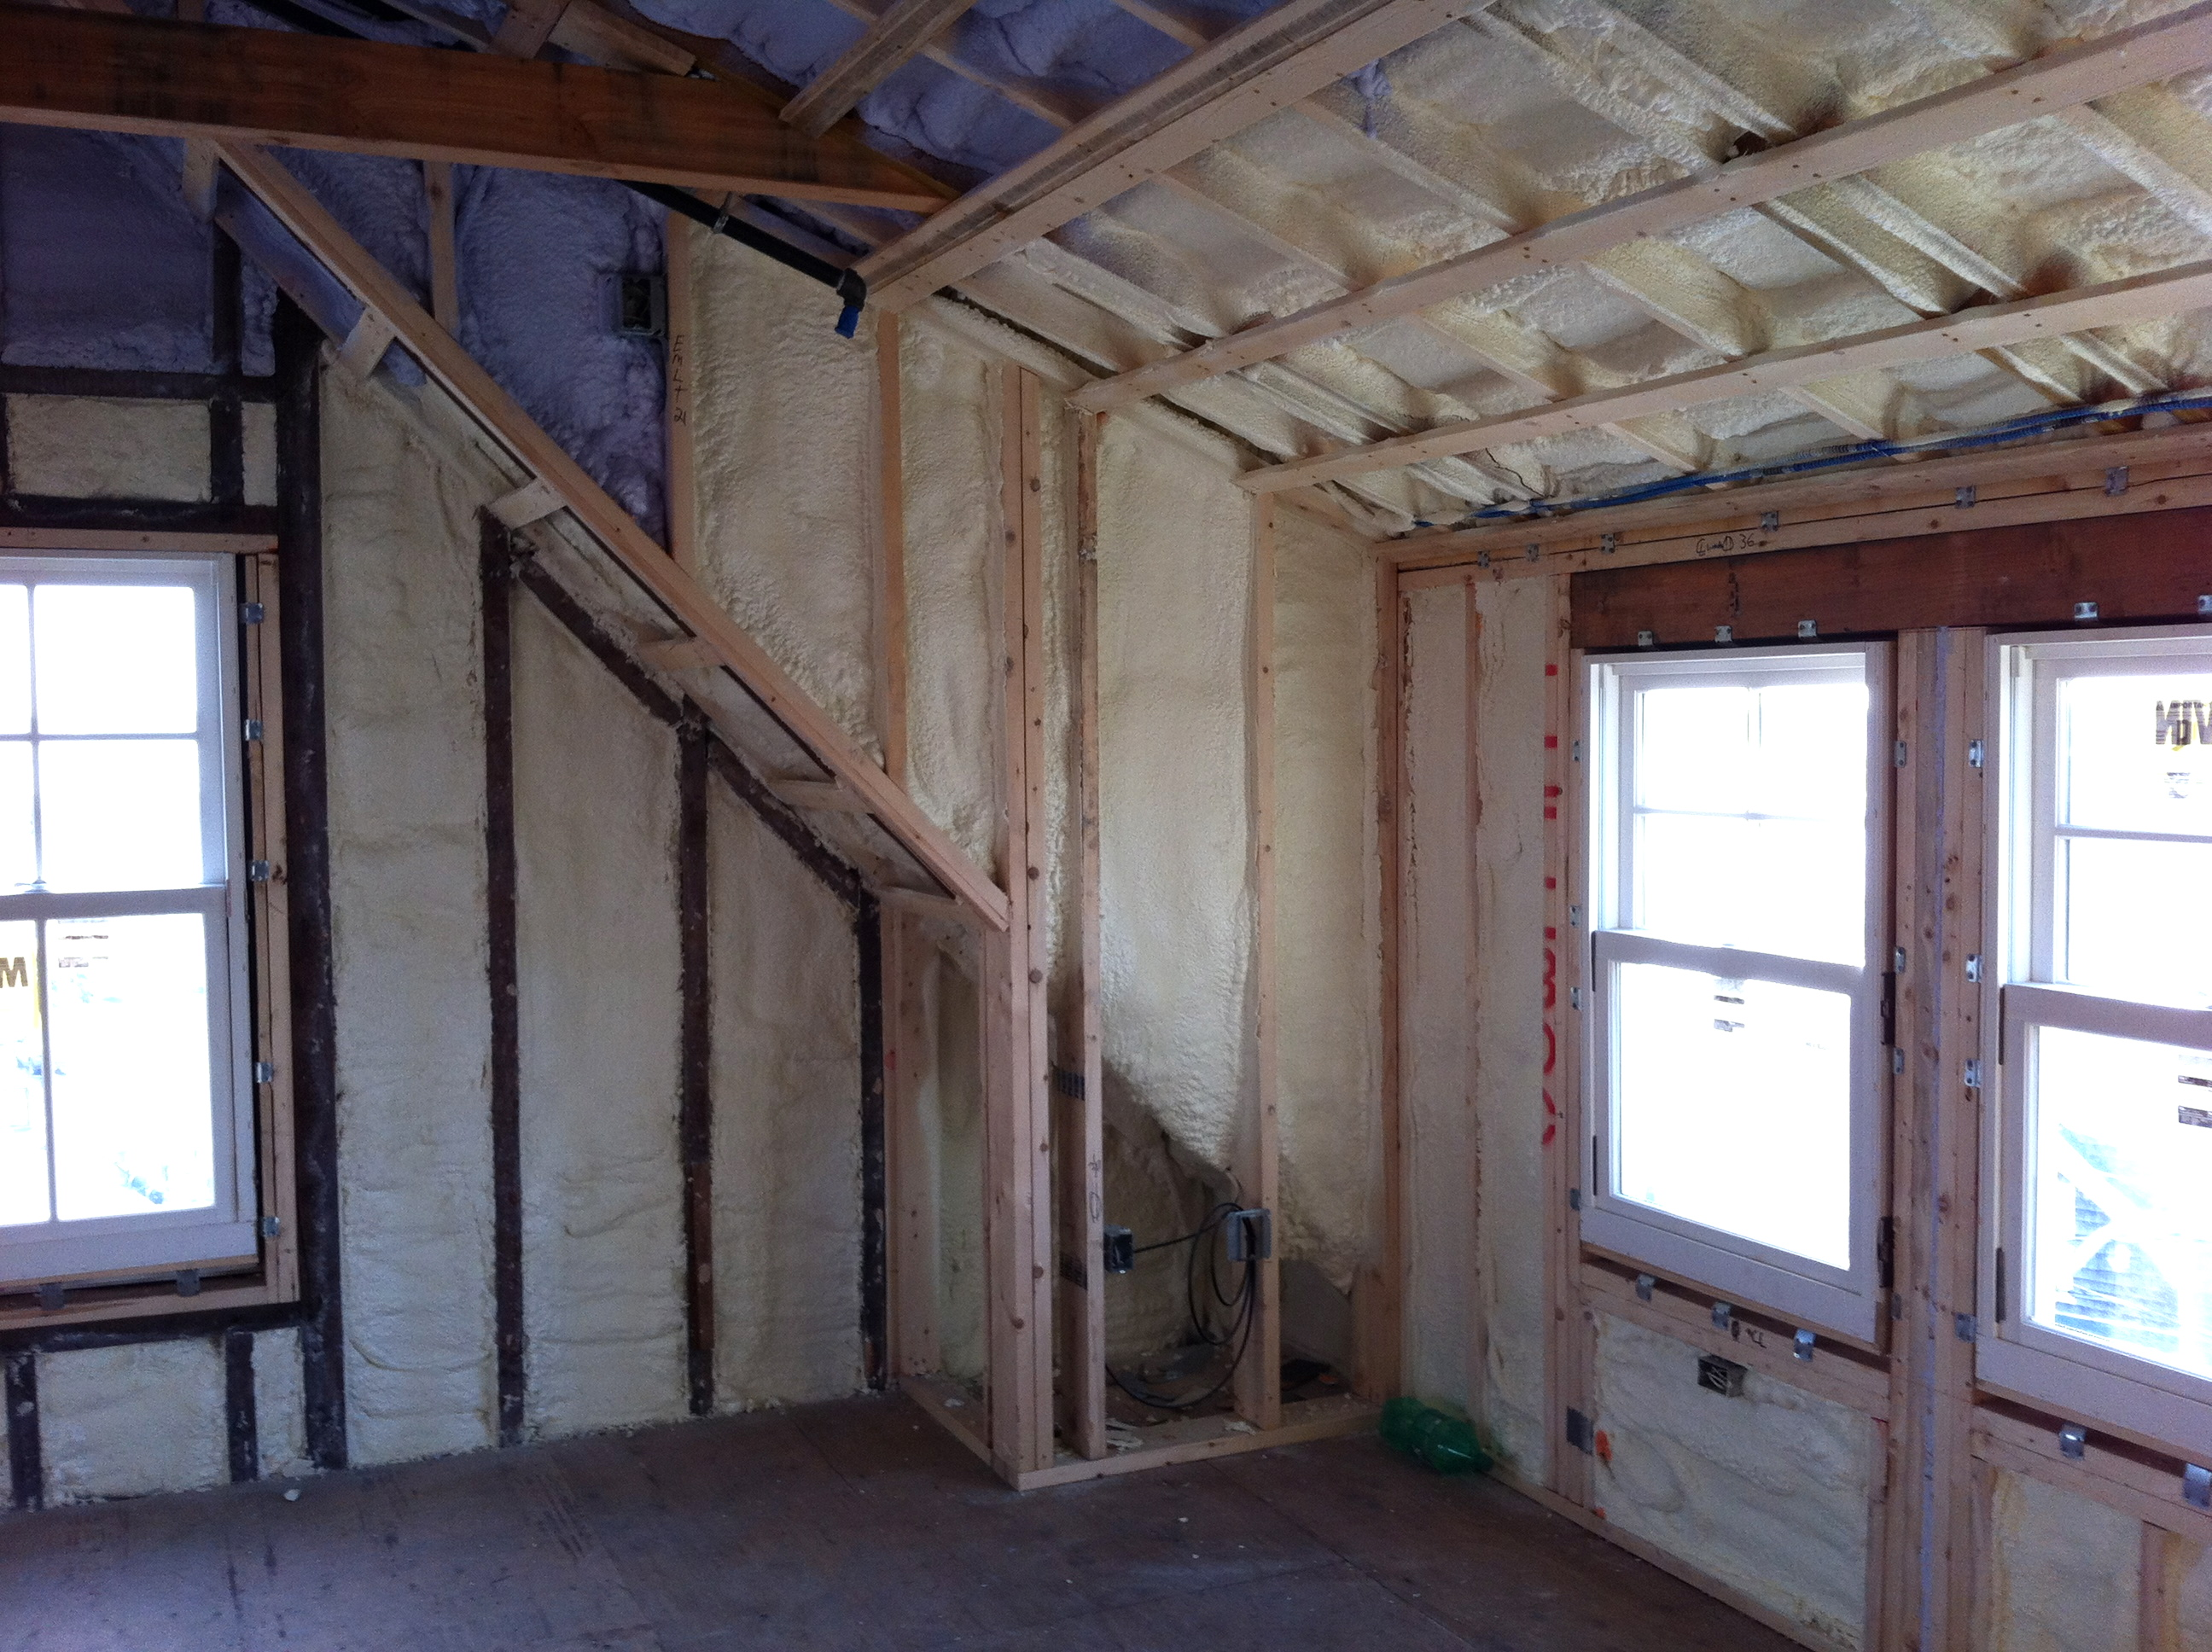 Open cell foam insulation on the top floor of the Woods Hole Inn, under construction.